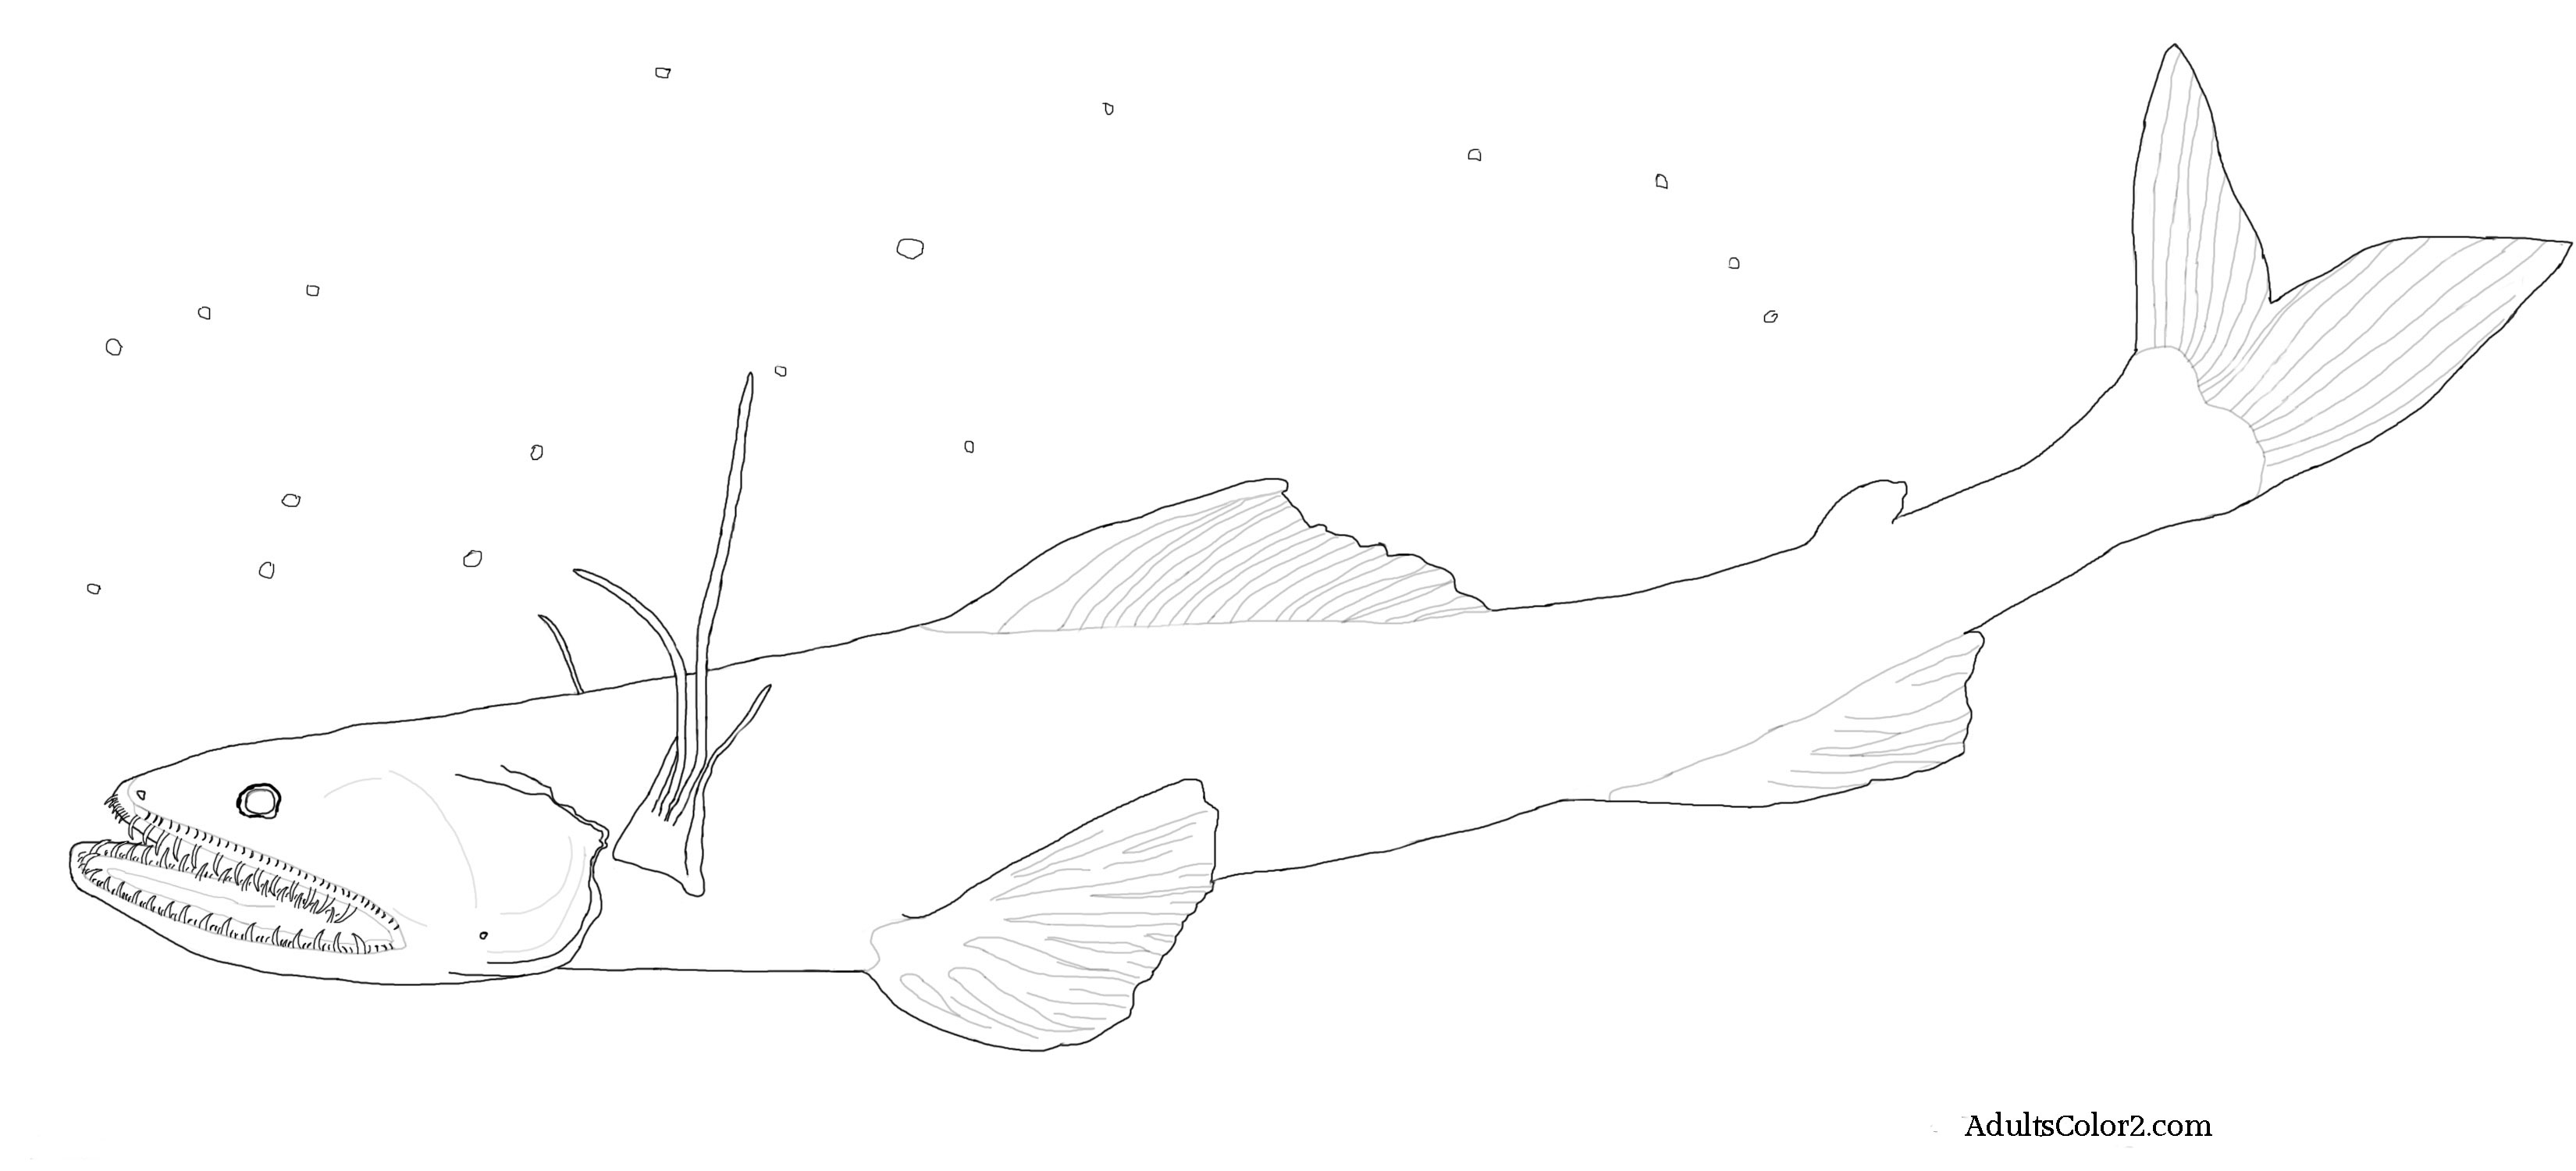 Deepsea lizardfish waiting for his next meal. Line drawing derived from a NOAA photo on Wikimedia.